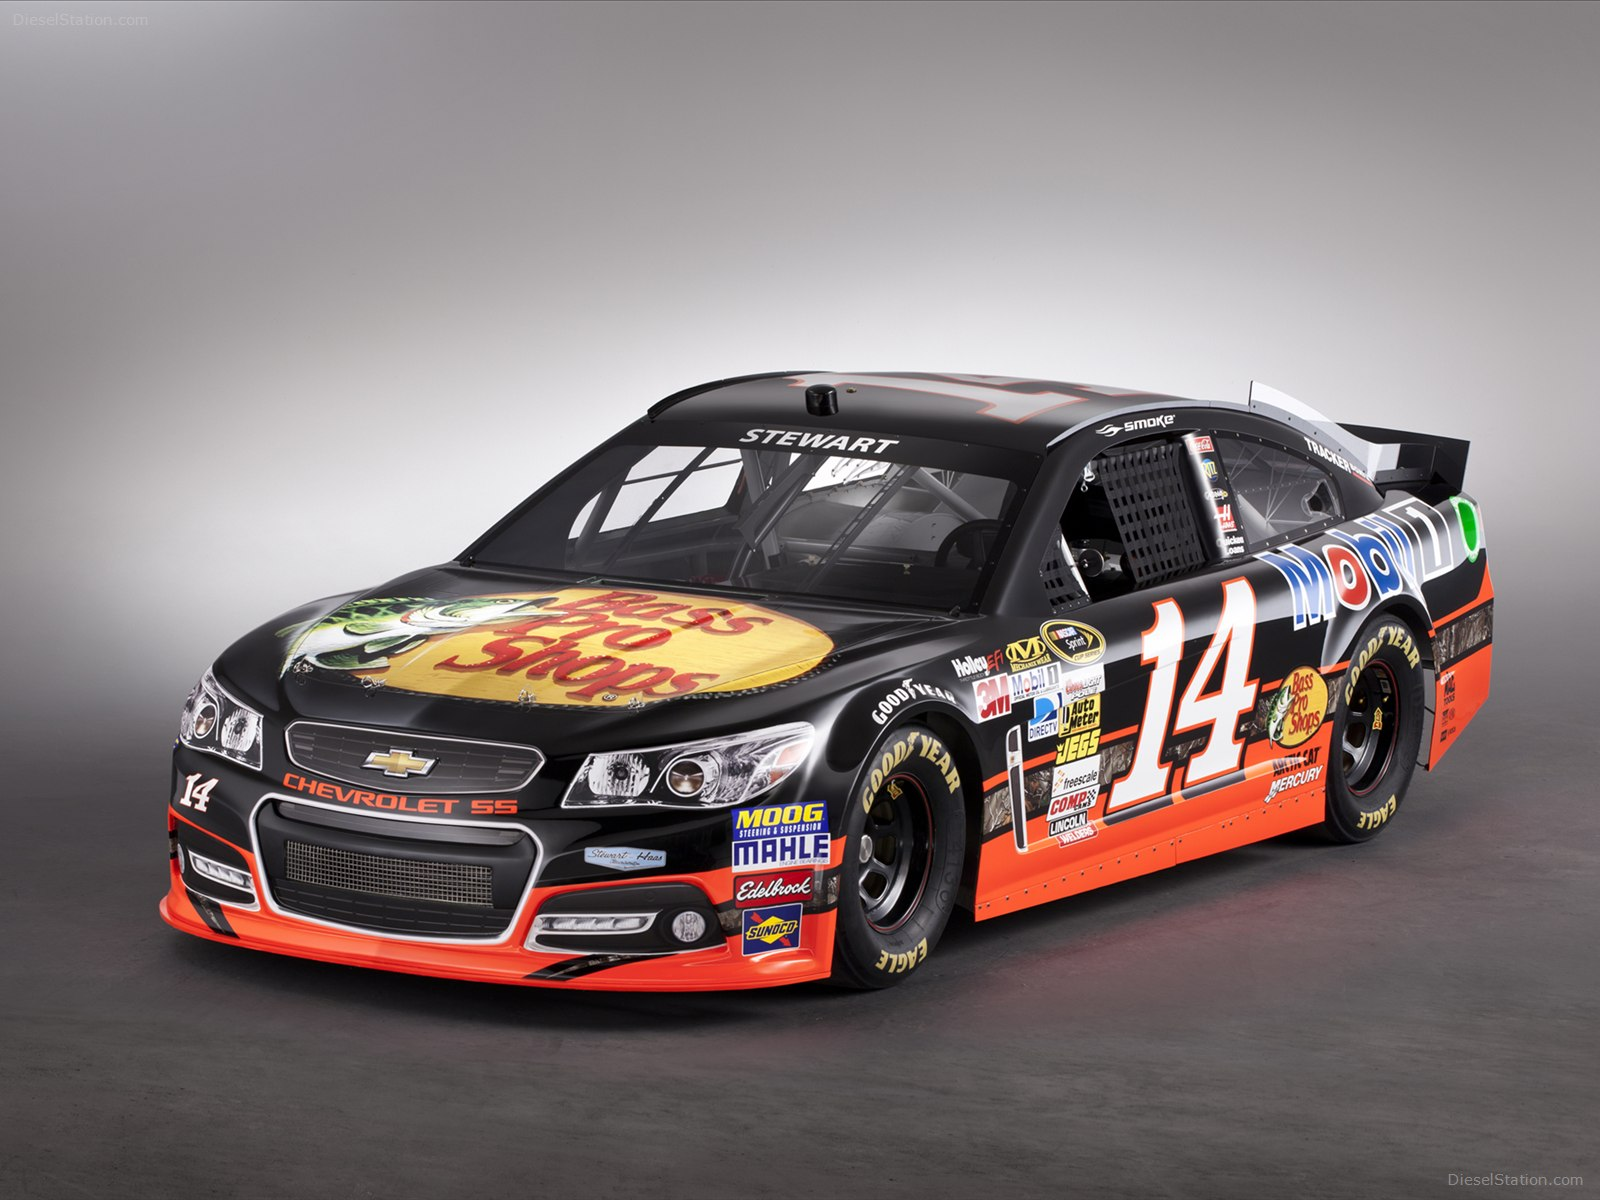 Chevrolet NASCAR SS Race Car 2013 Exotic Car Wallpapers 08 of 16 1600x1200